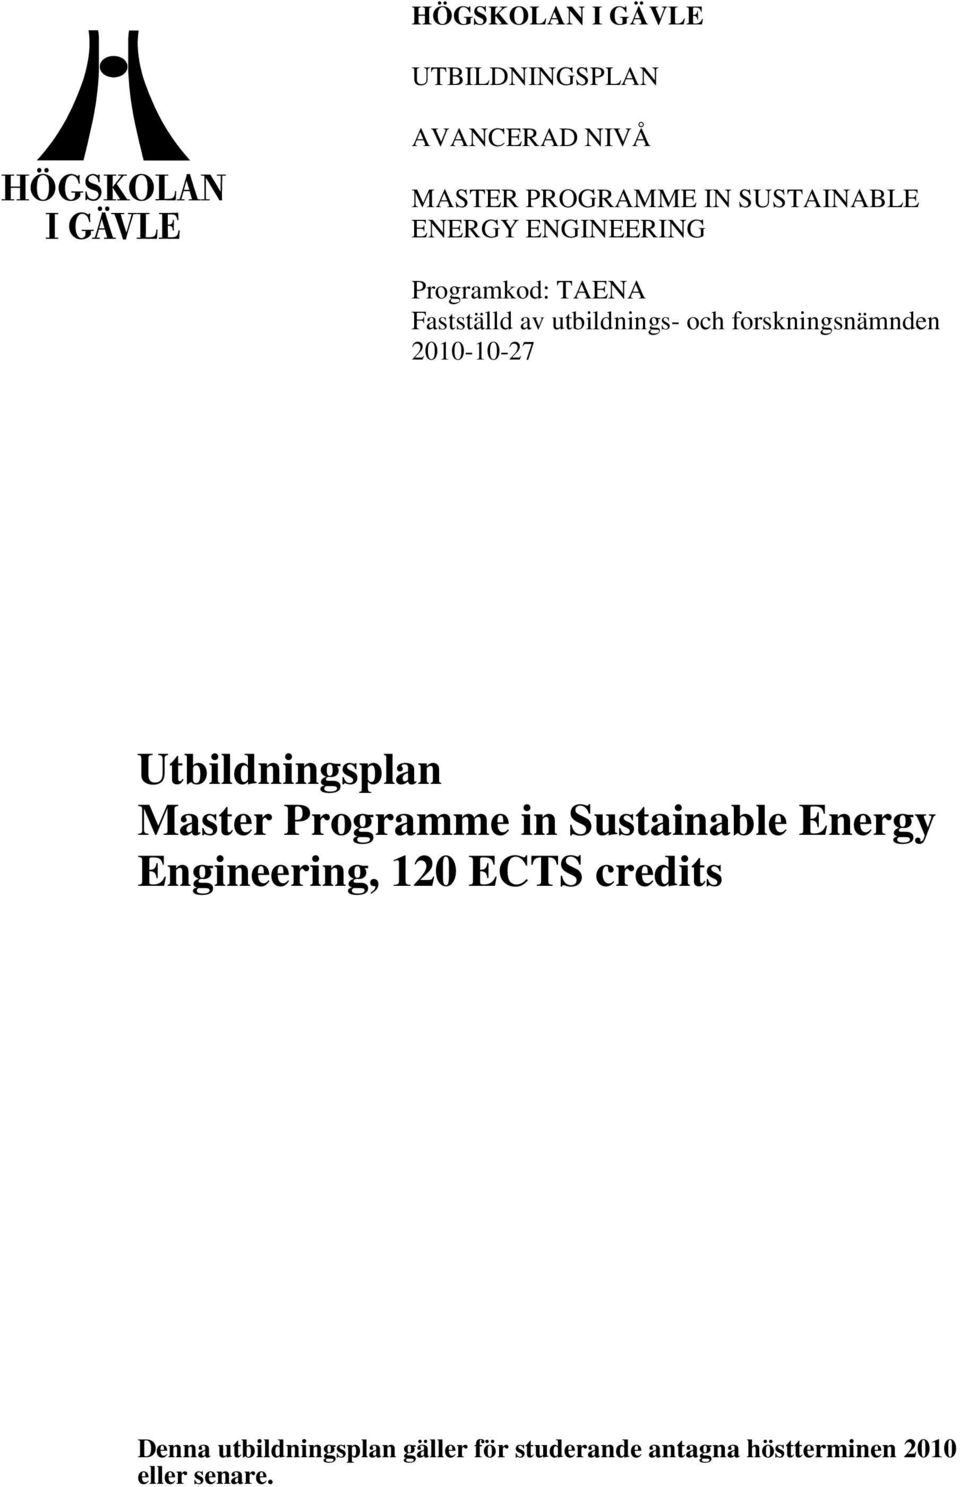 2010-10-27 Utbildningsplan Master Programme in Sustainable Energy Engineering, 120